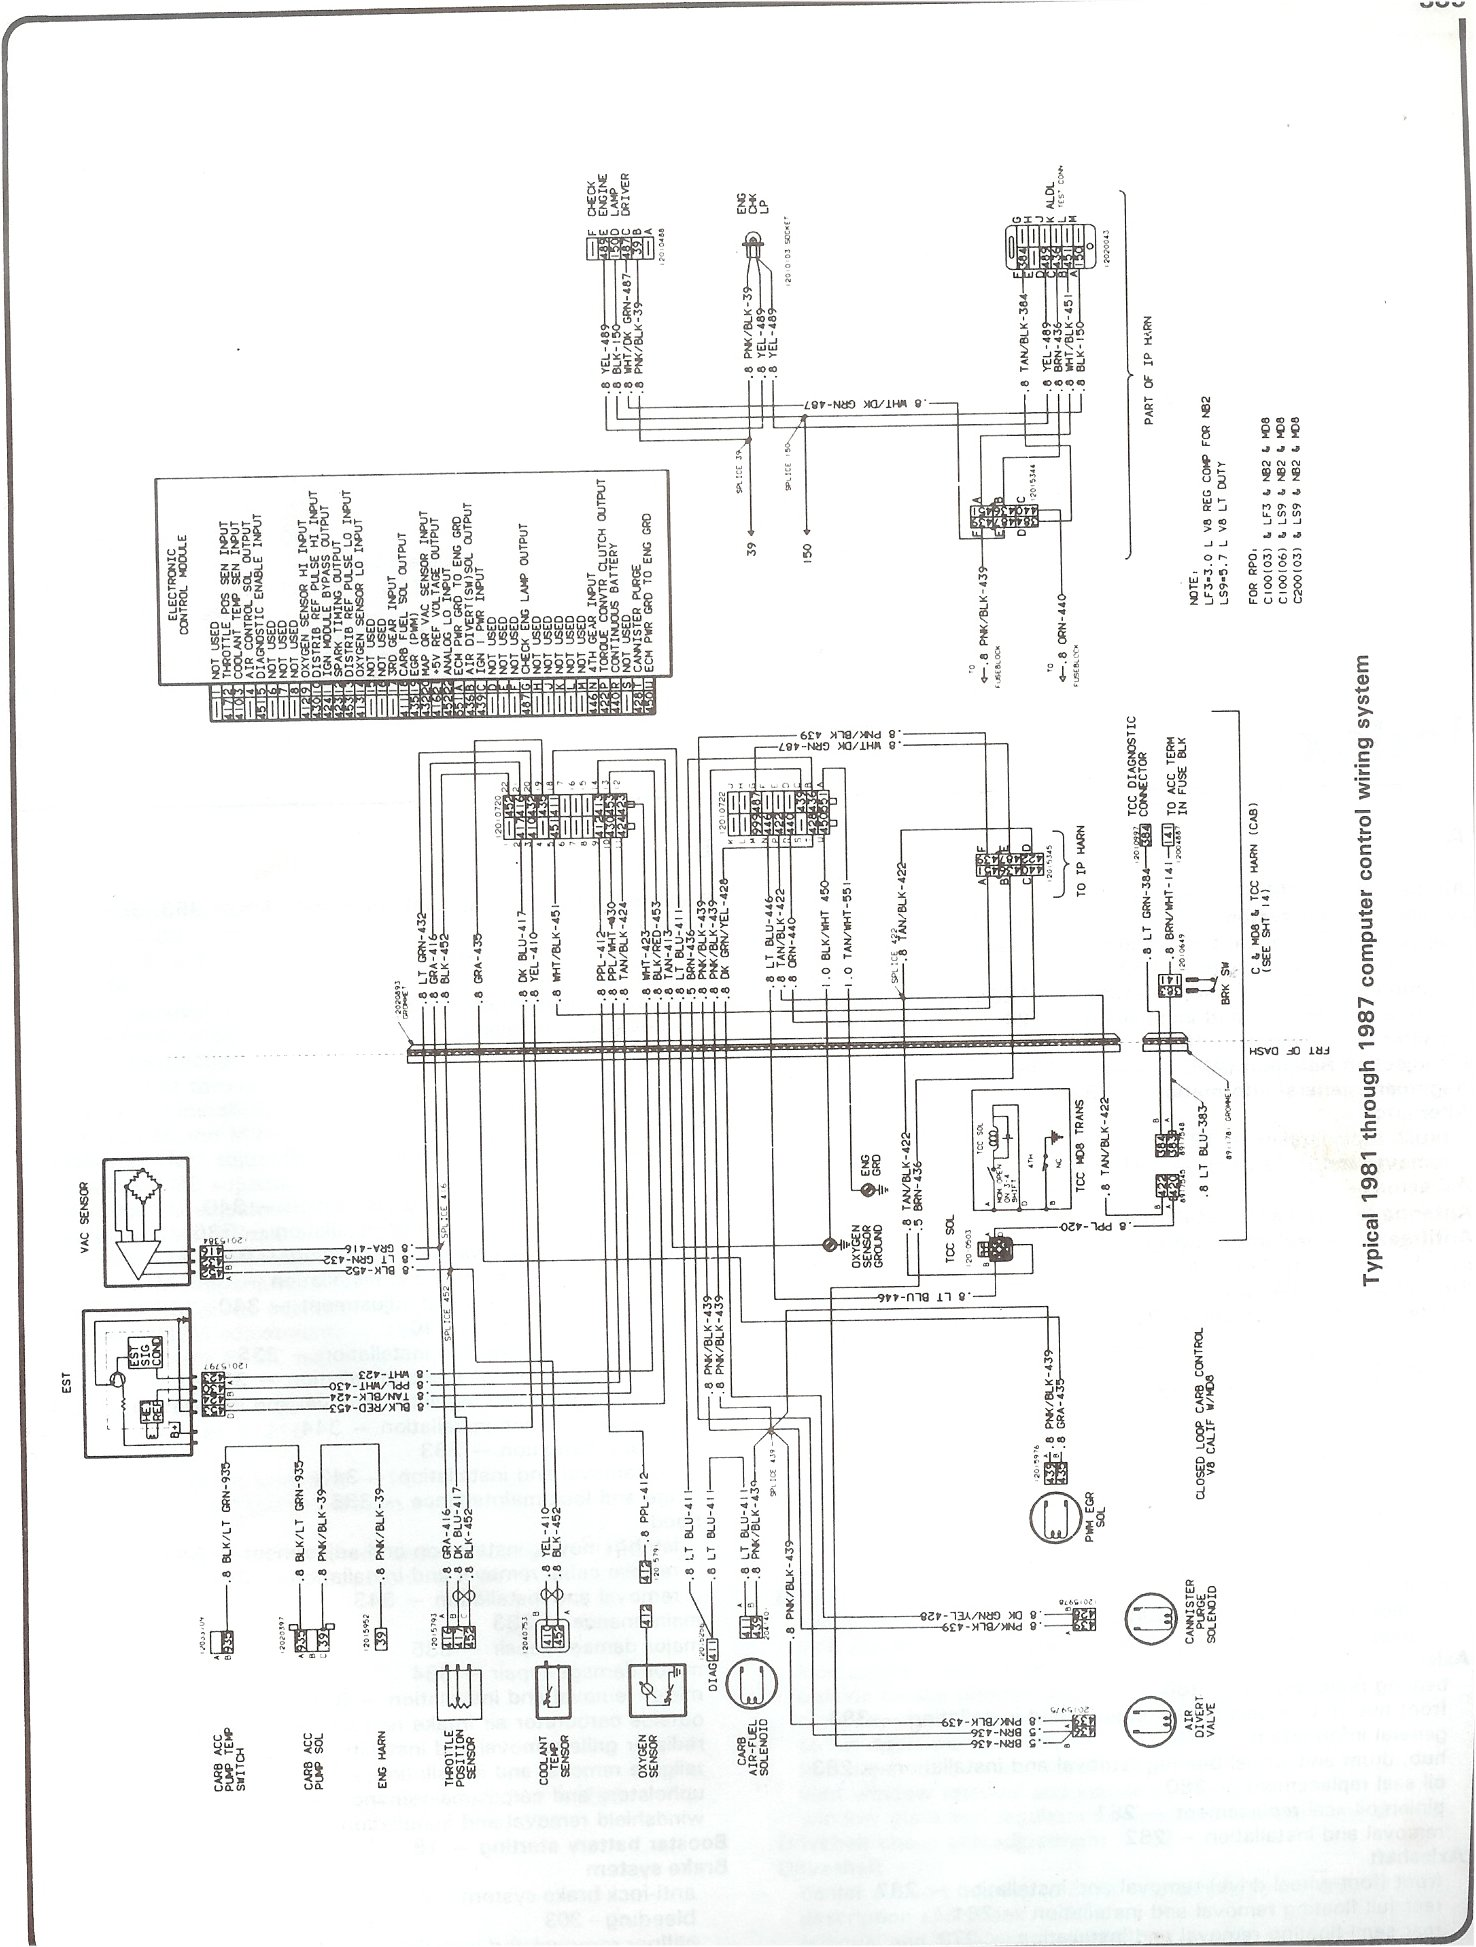 Complete 73-87 Wiring Diagrams73-87 Chevy Trucks